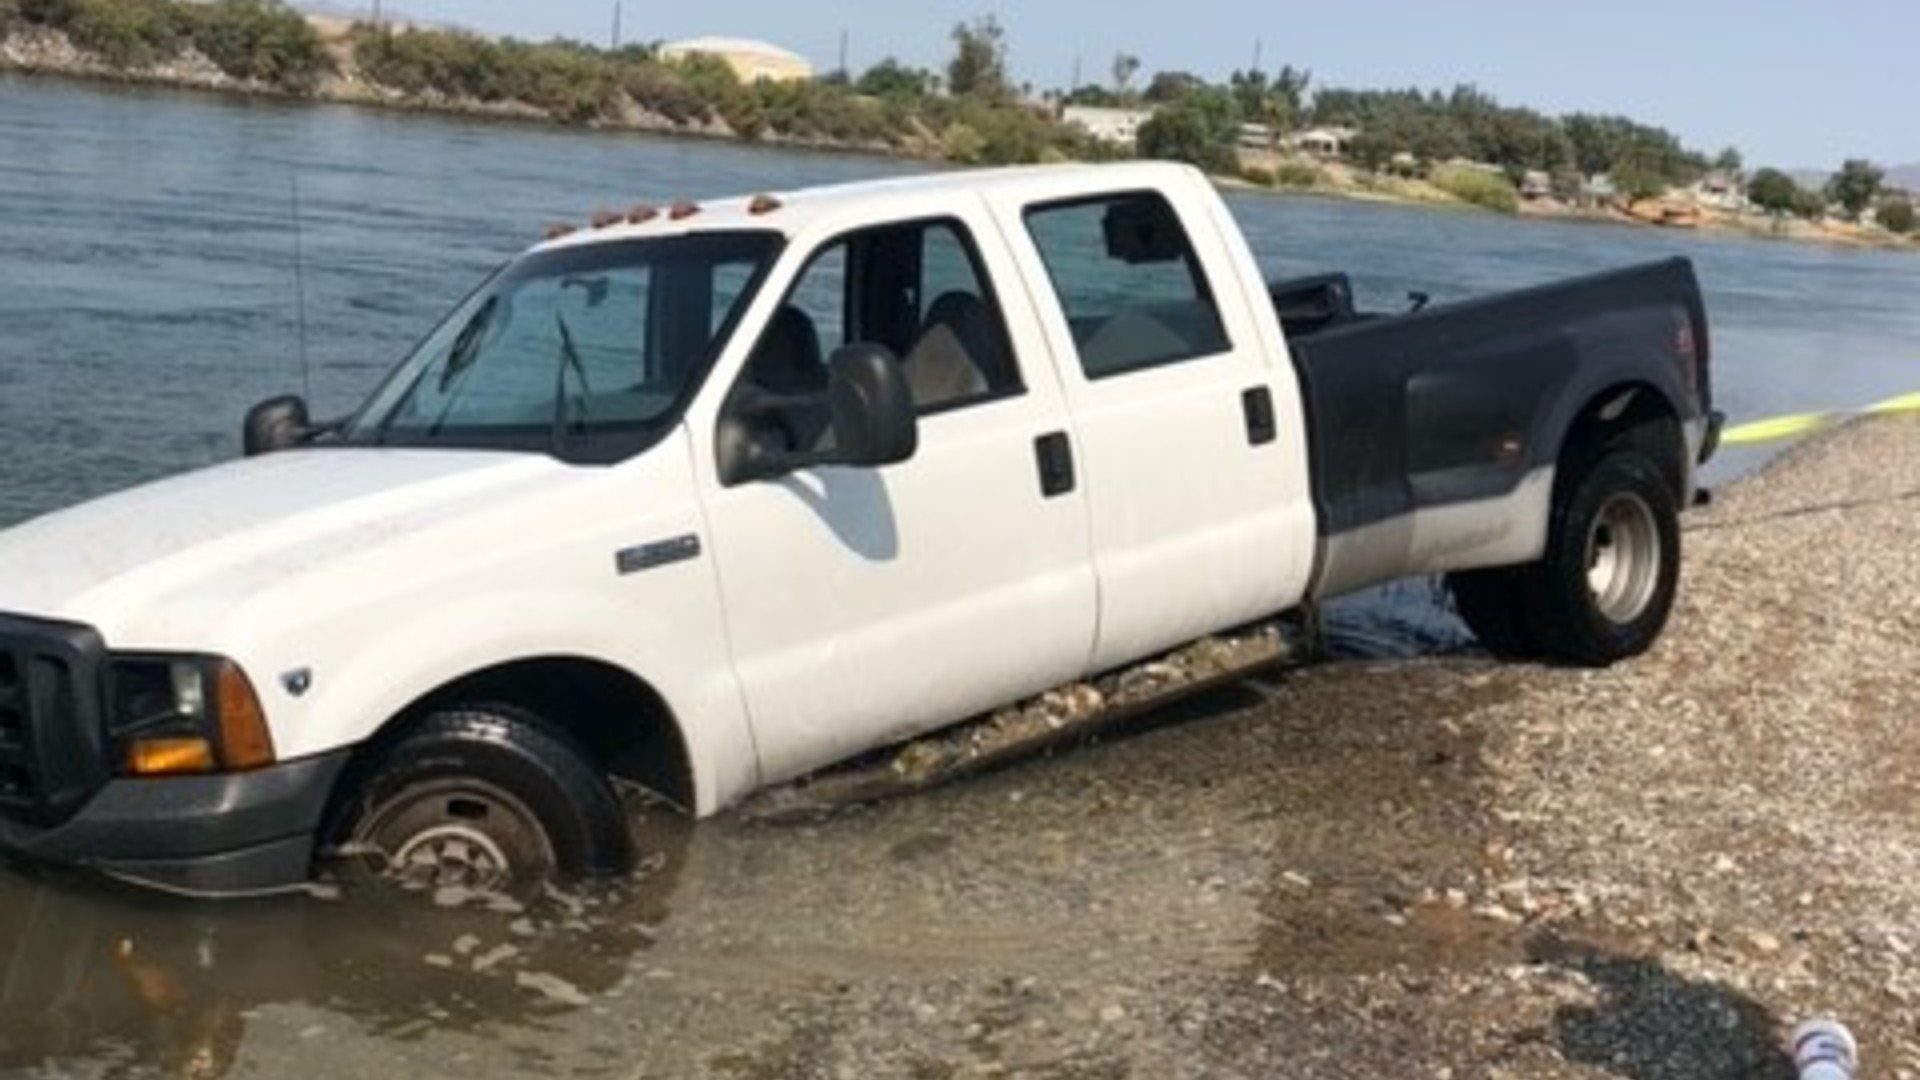 A man was arrested after driving his car into the Colorado River after fleeing from deputies during a traffic stop in Needles on Aug. 16, 2021. (San Bernardino County Sheriff's Department)